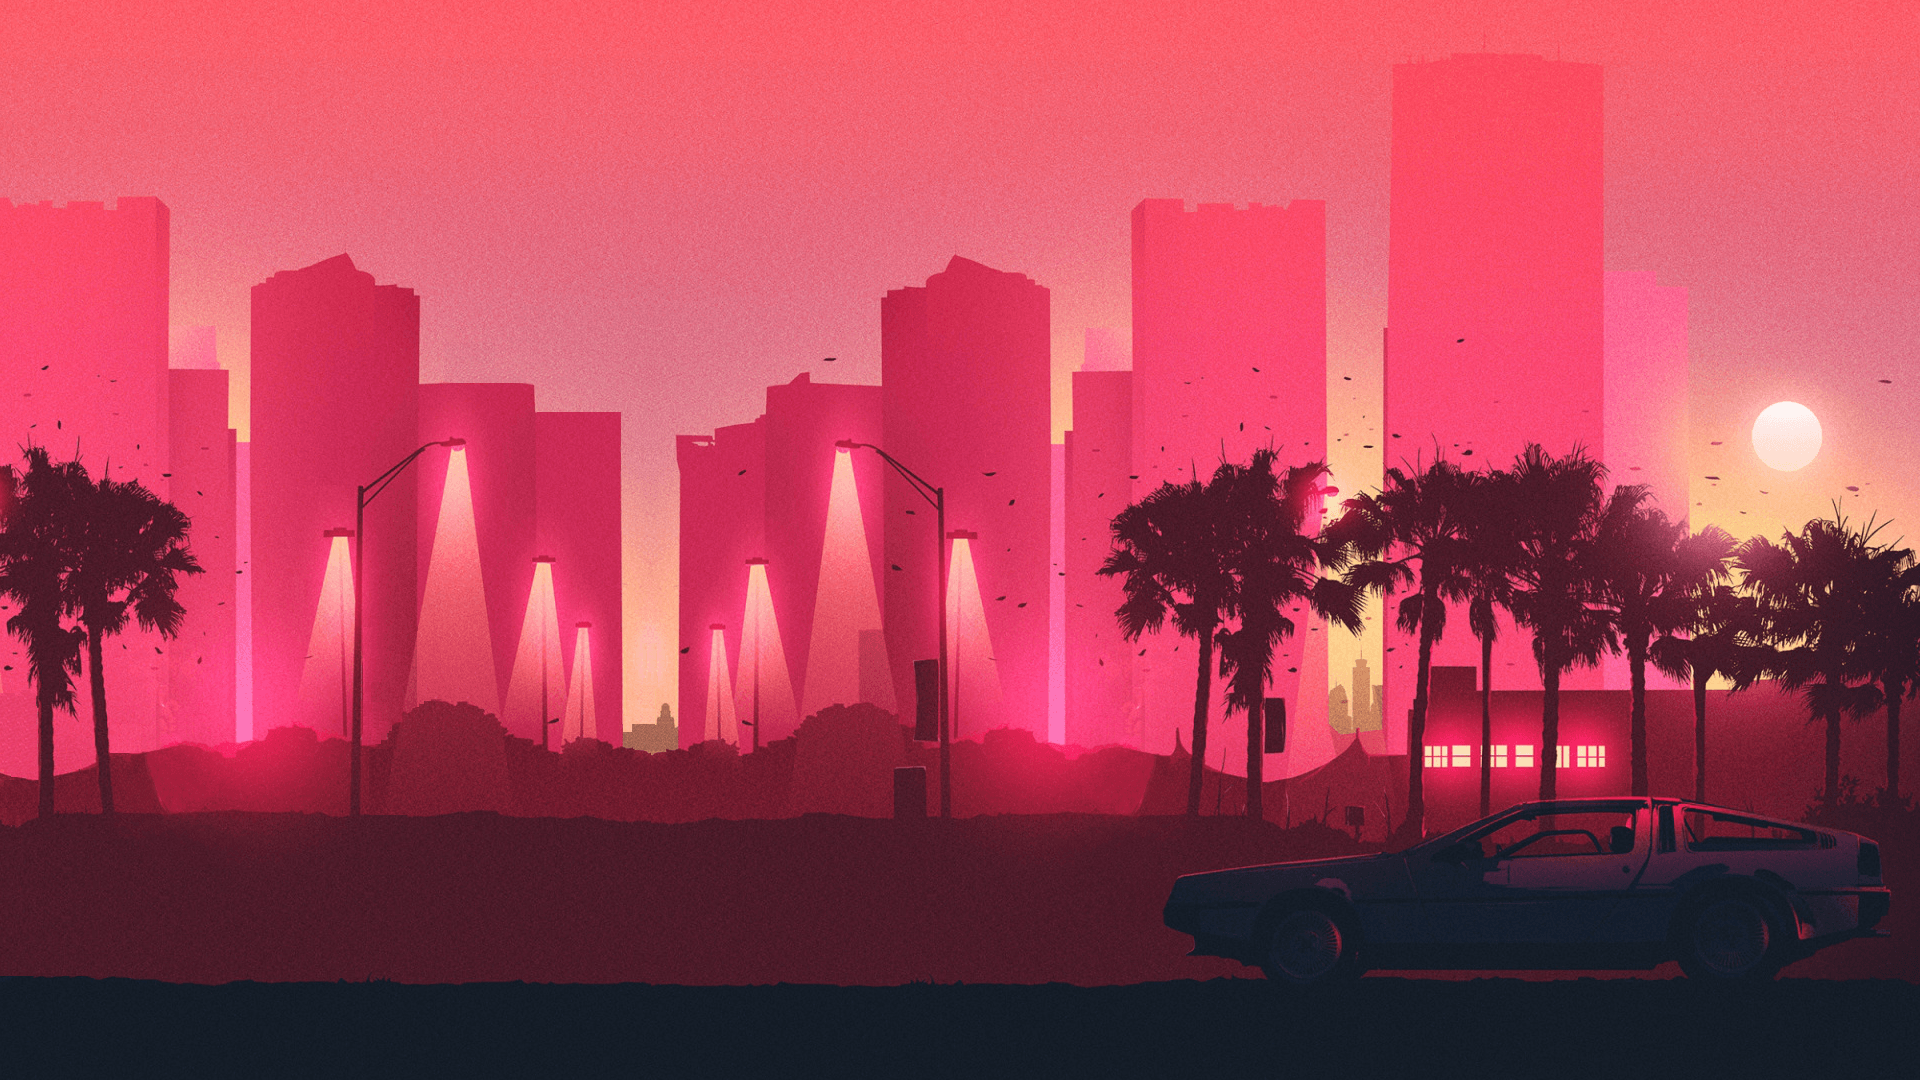 Wallpapers collection thread. : outrun